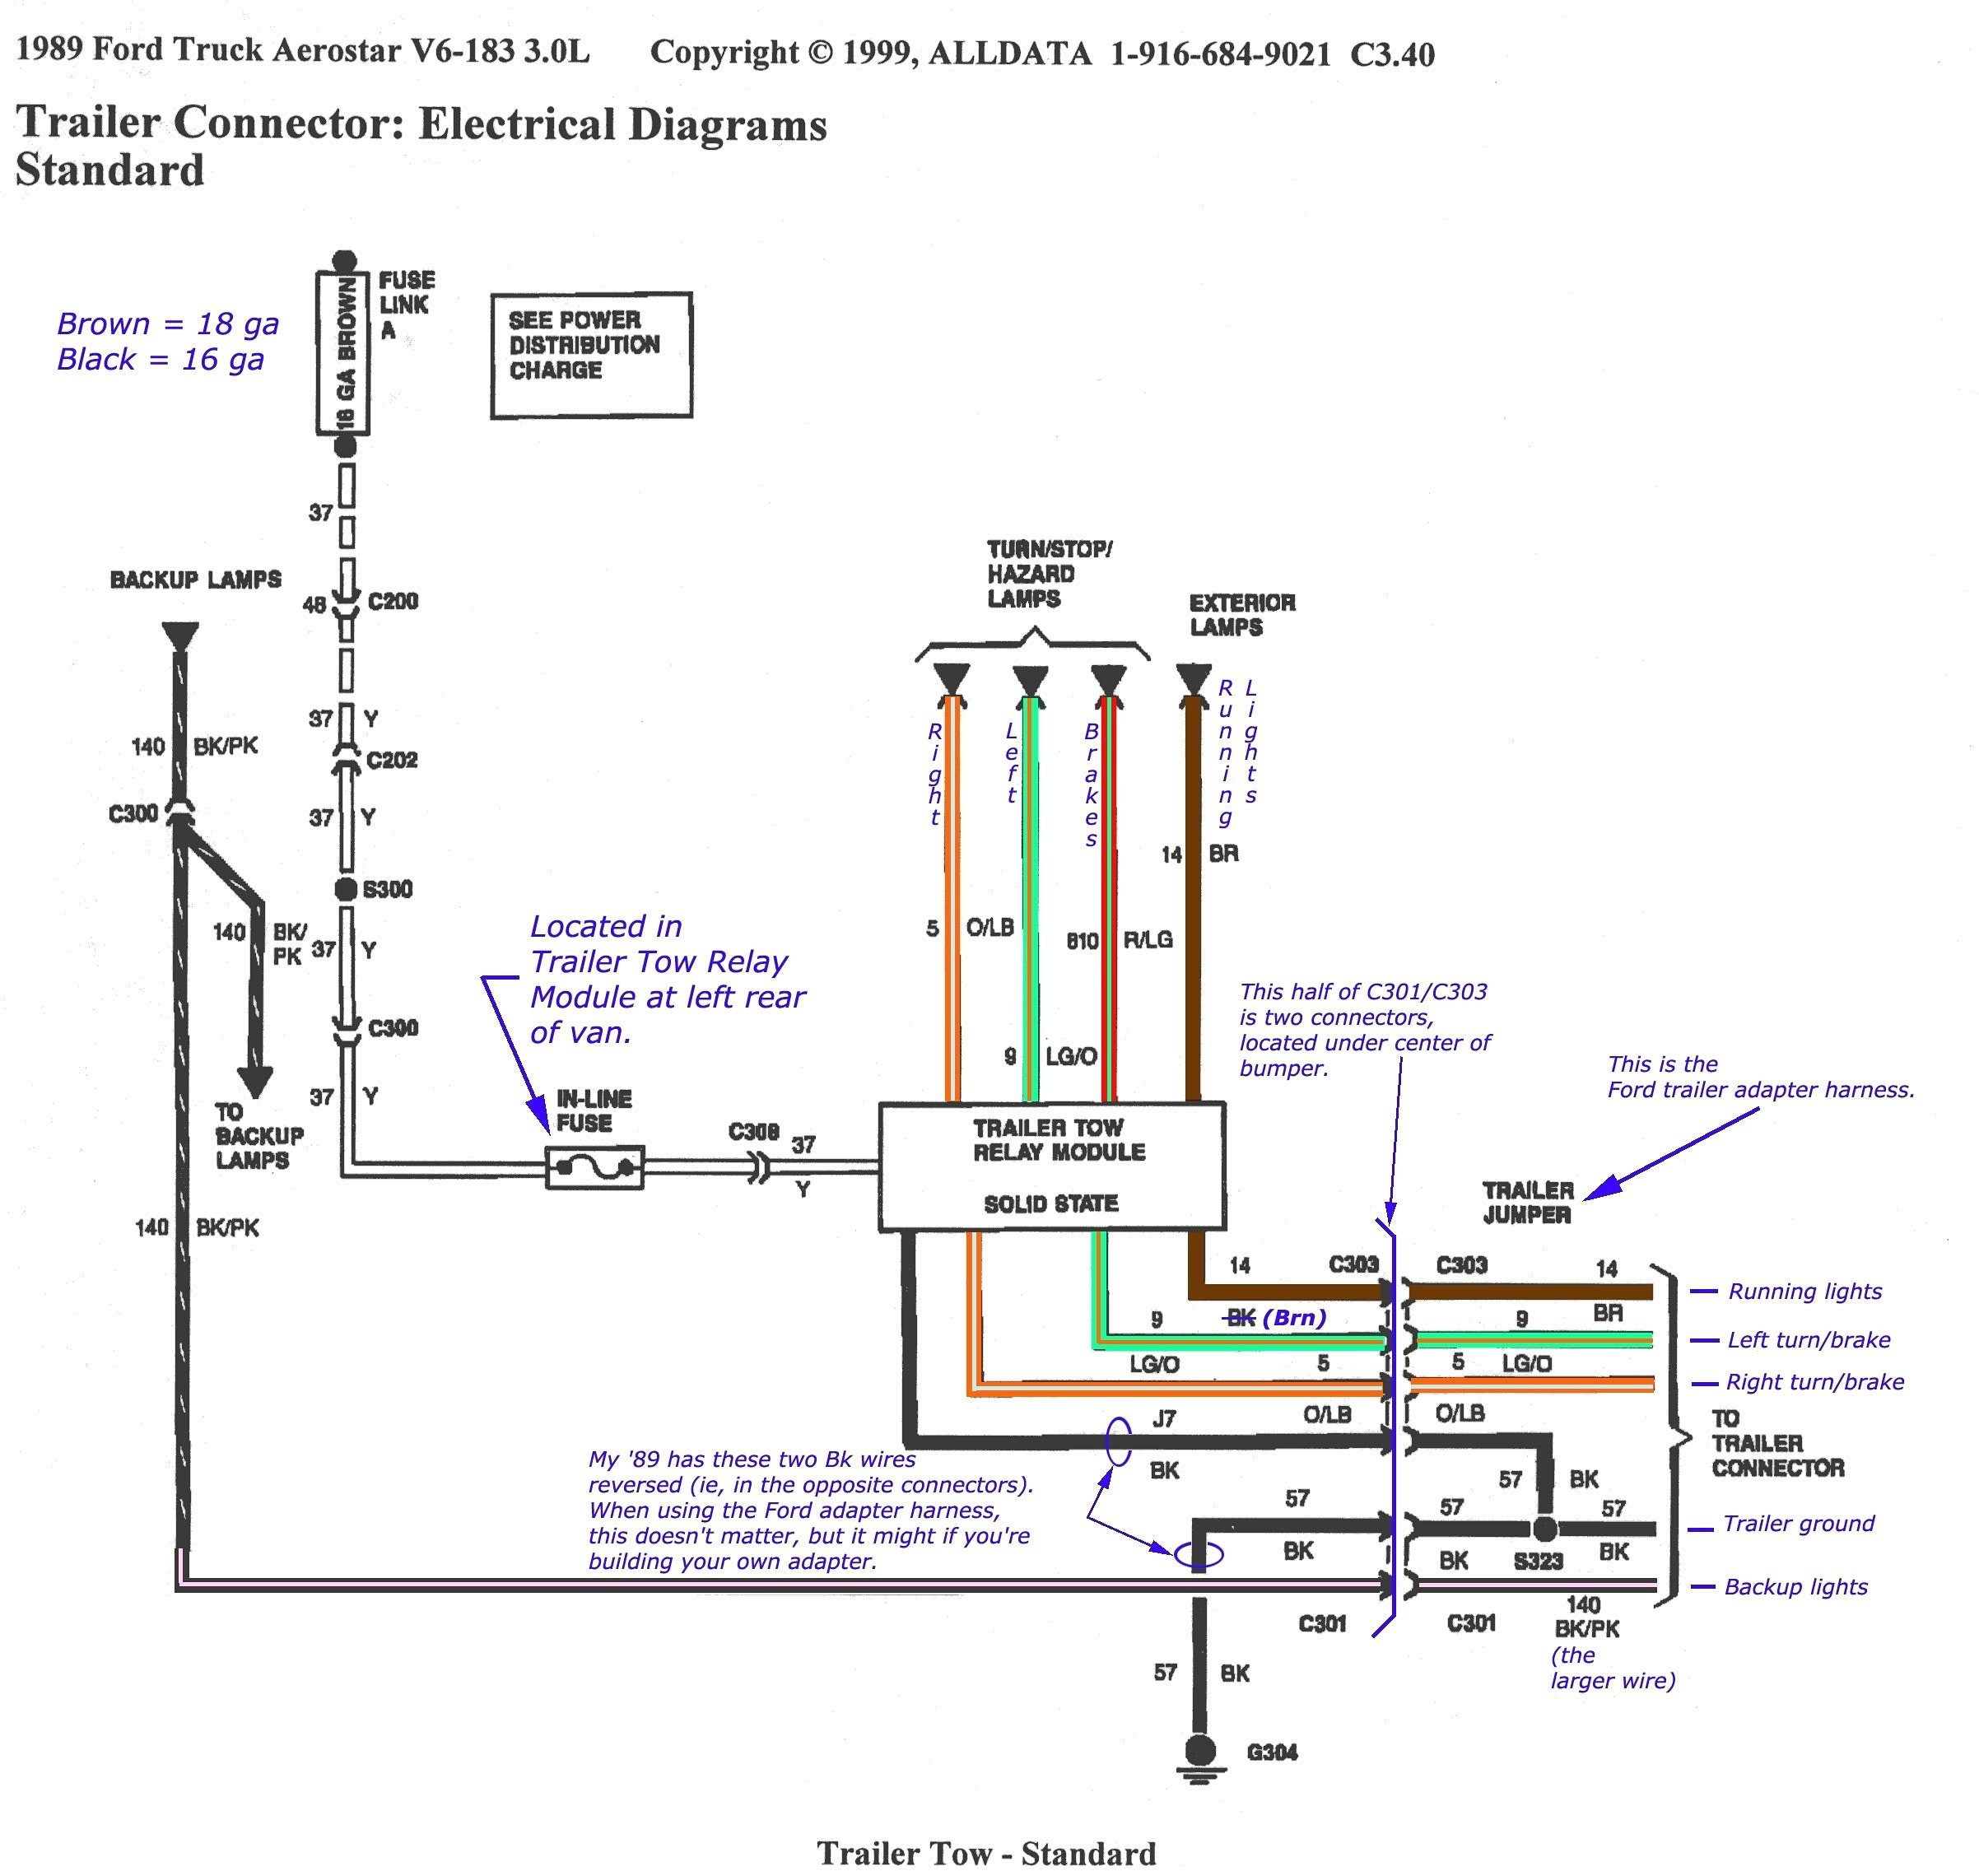 Reliance Brake Controller Wiring Diagram from static-cdn.imageservice.cloud